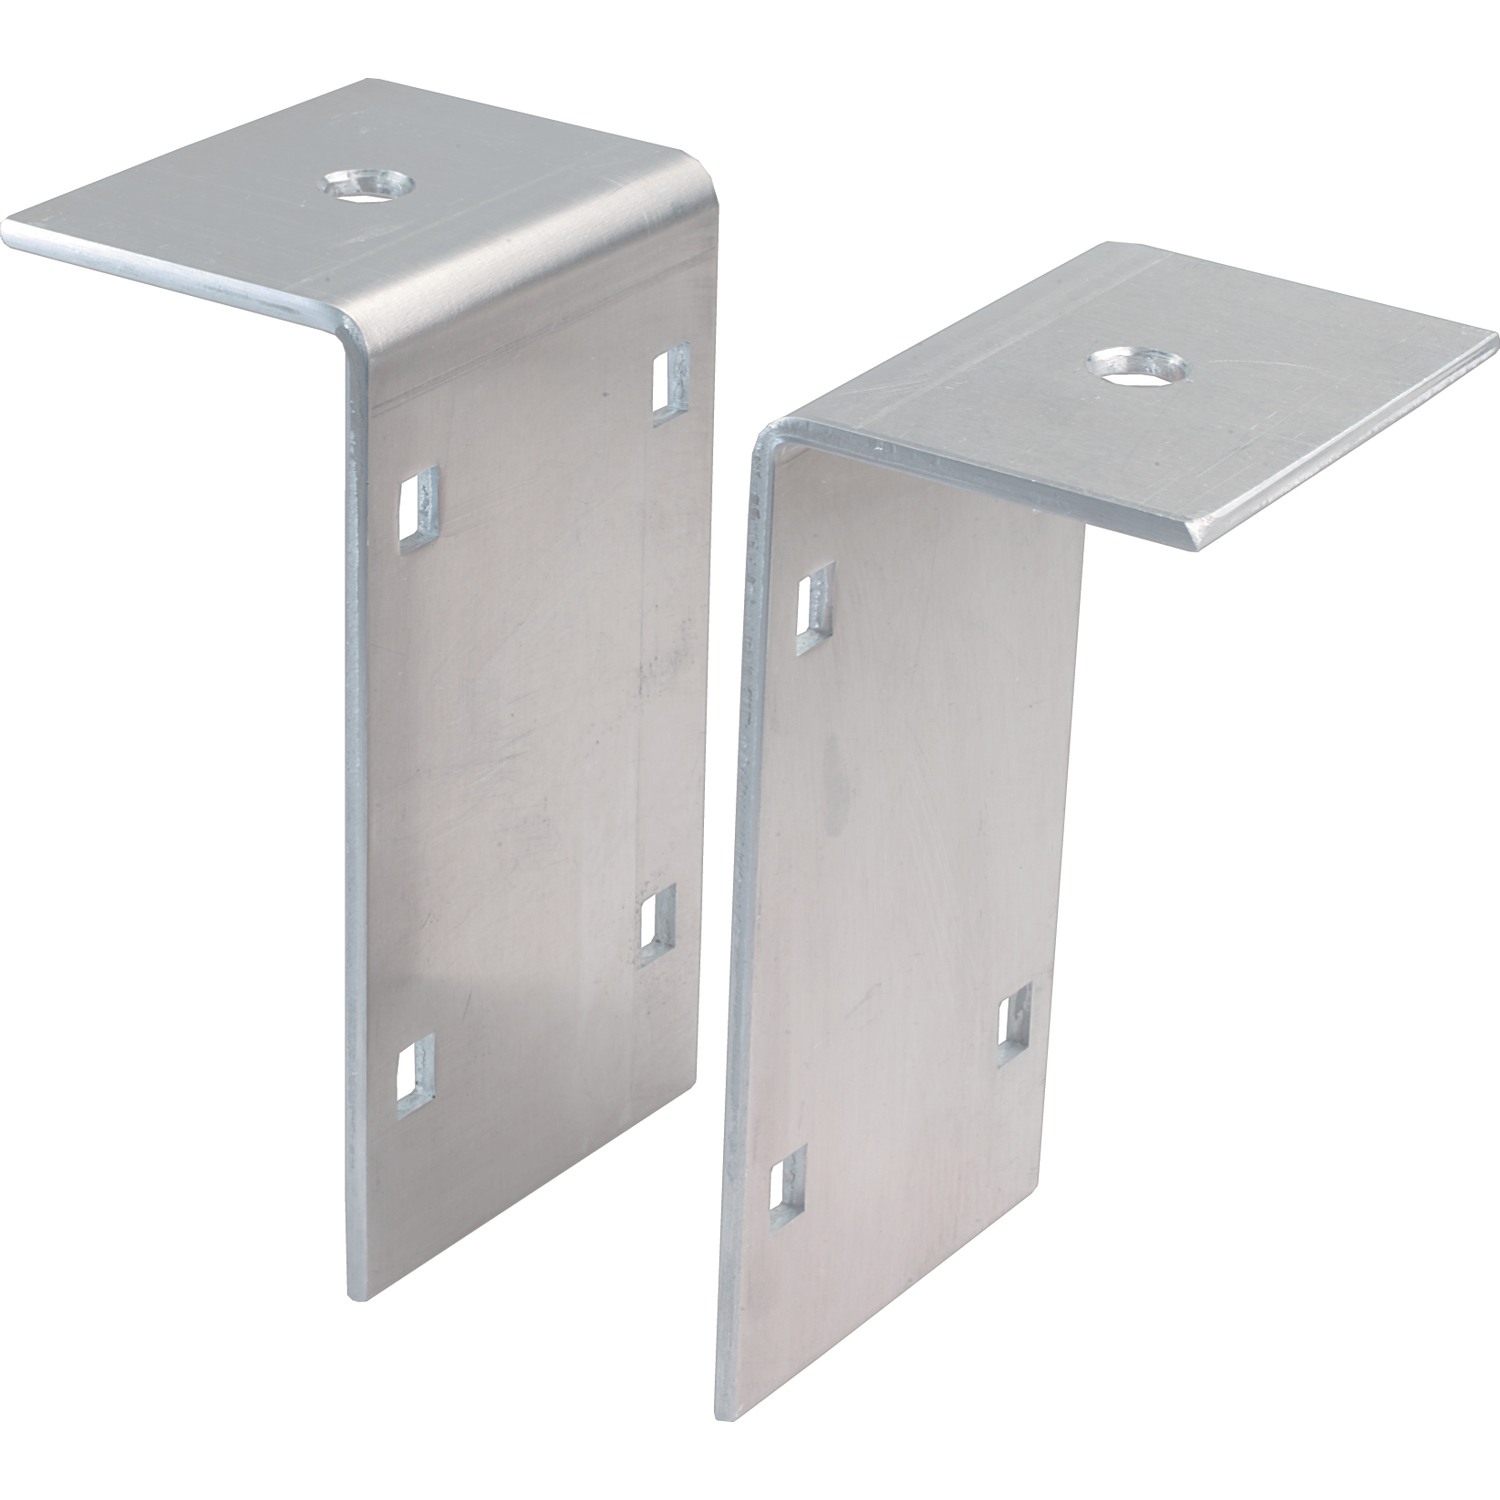 PG VERTICAL TRAY HANGER 7IND TRAY